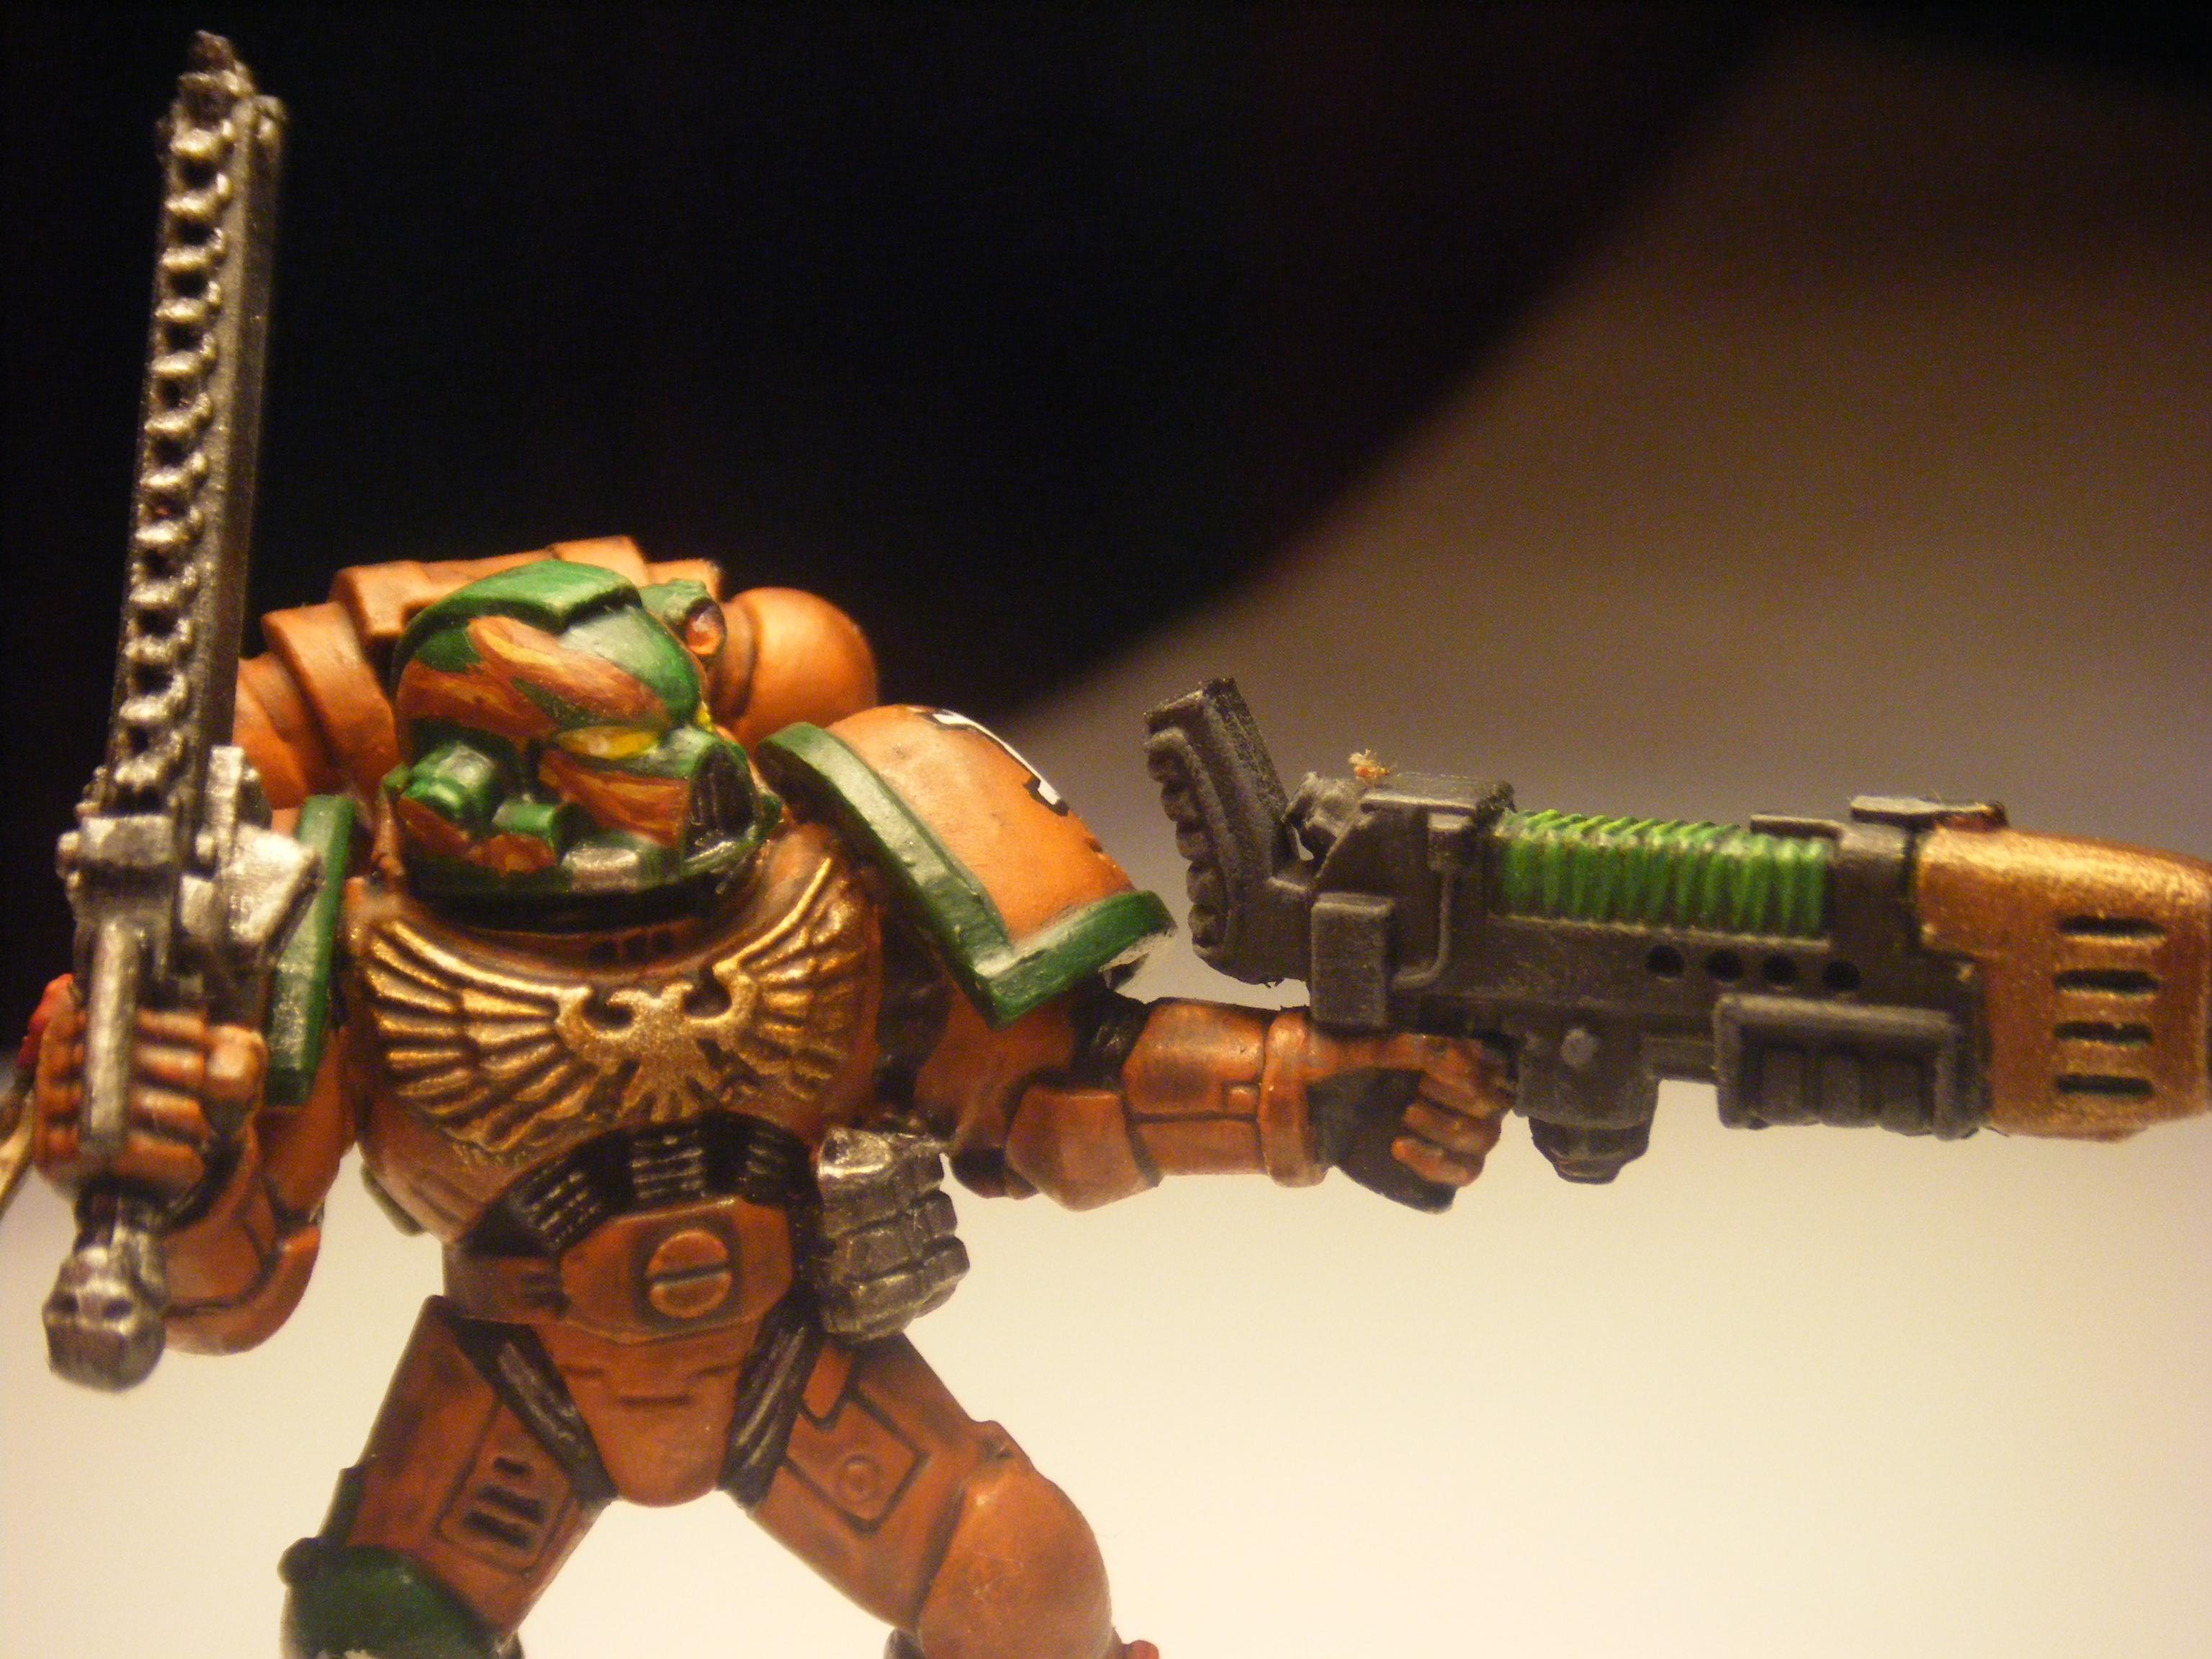 Chainsword, Great Marine Swap, Plasma Gun, Space Marines, Warhammer 40,000